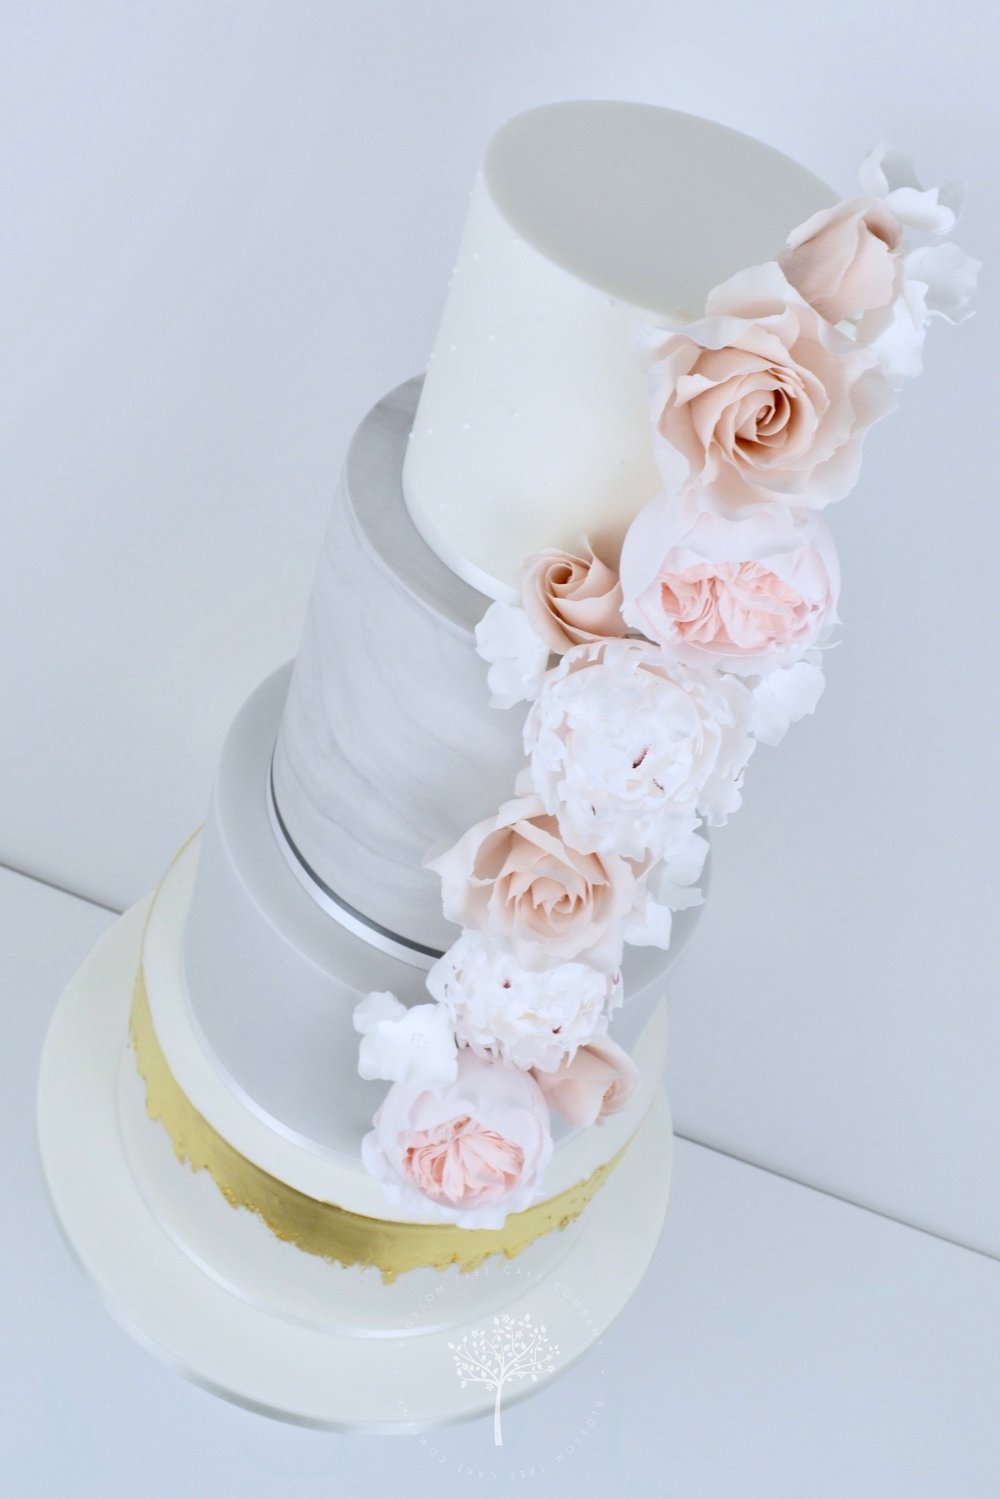 Nude Roses & Peony wedding cake by Blossom Tree Cake Company Harrogate North Yorkshire - angle.jpg